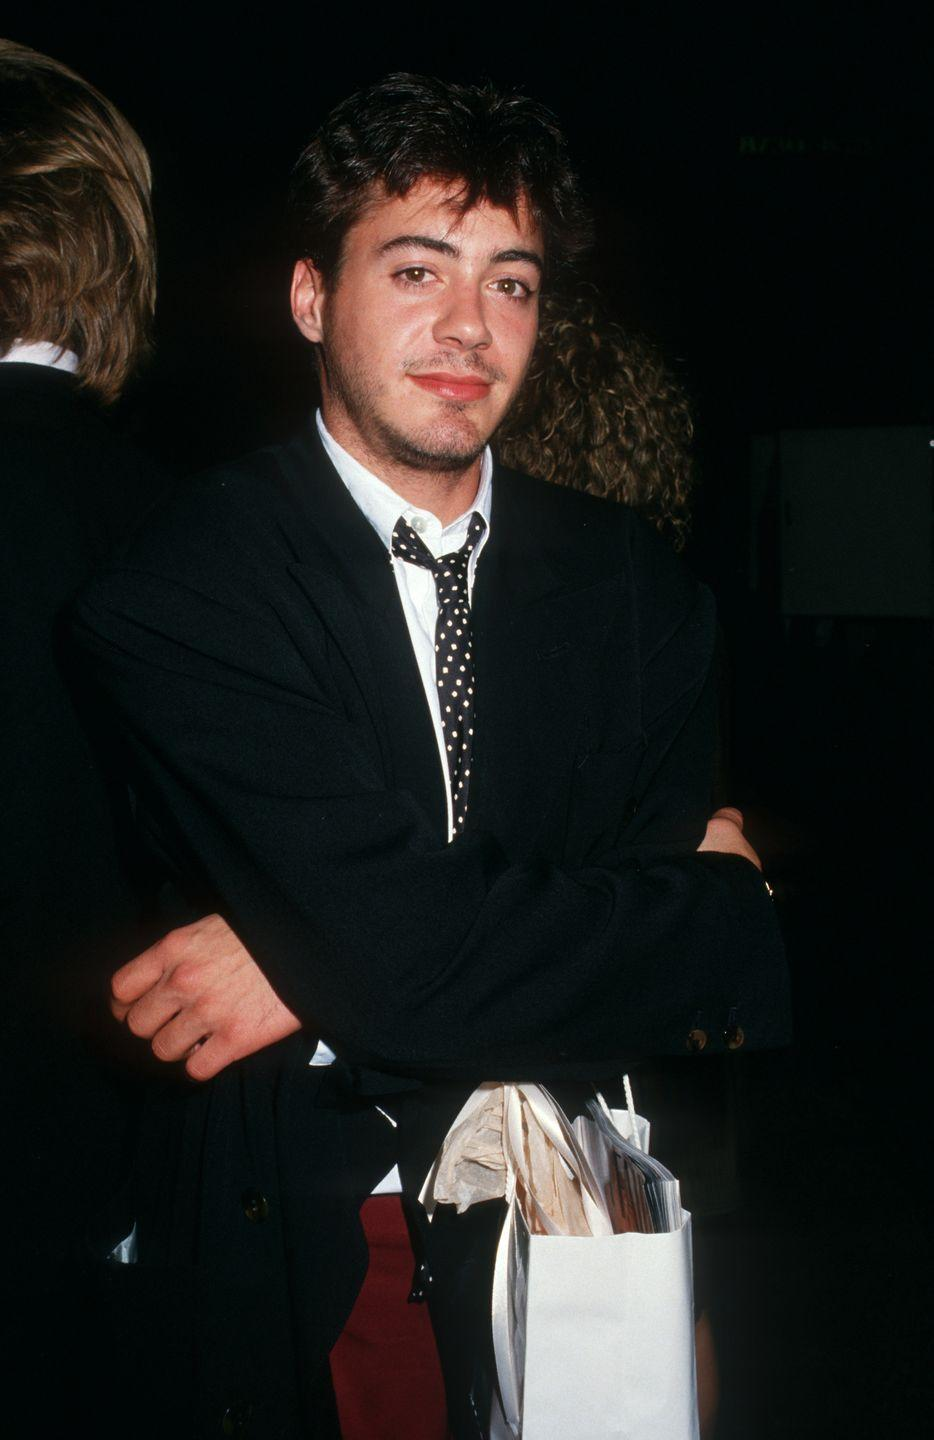 "<p>Heartthrob Robert Downey Jr. was once considered a part of the ""Brat Pack"" after appearing in <em>Weird Science </em>(1985), <em>Back to School</em> (1986), <em>Less Than Zero</em> (1987), and <em>Johnny Be Hall </em>(1988). He was also a semi-regular cast member of <em>Saturday Night Live </em>in 1985, which helped jumpstart his career. </p>"